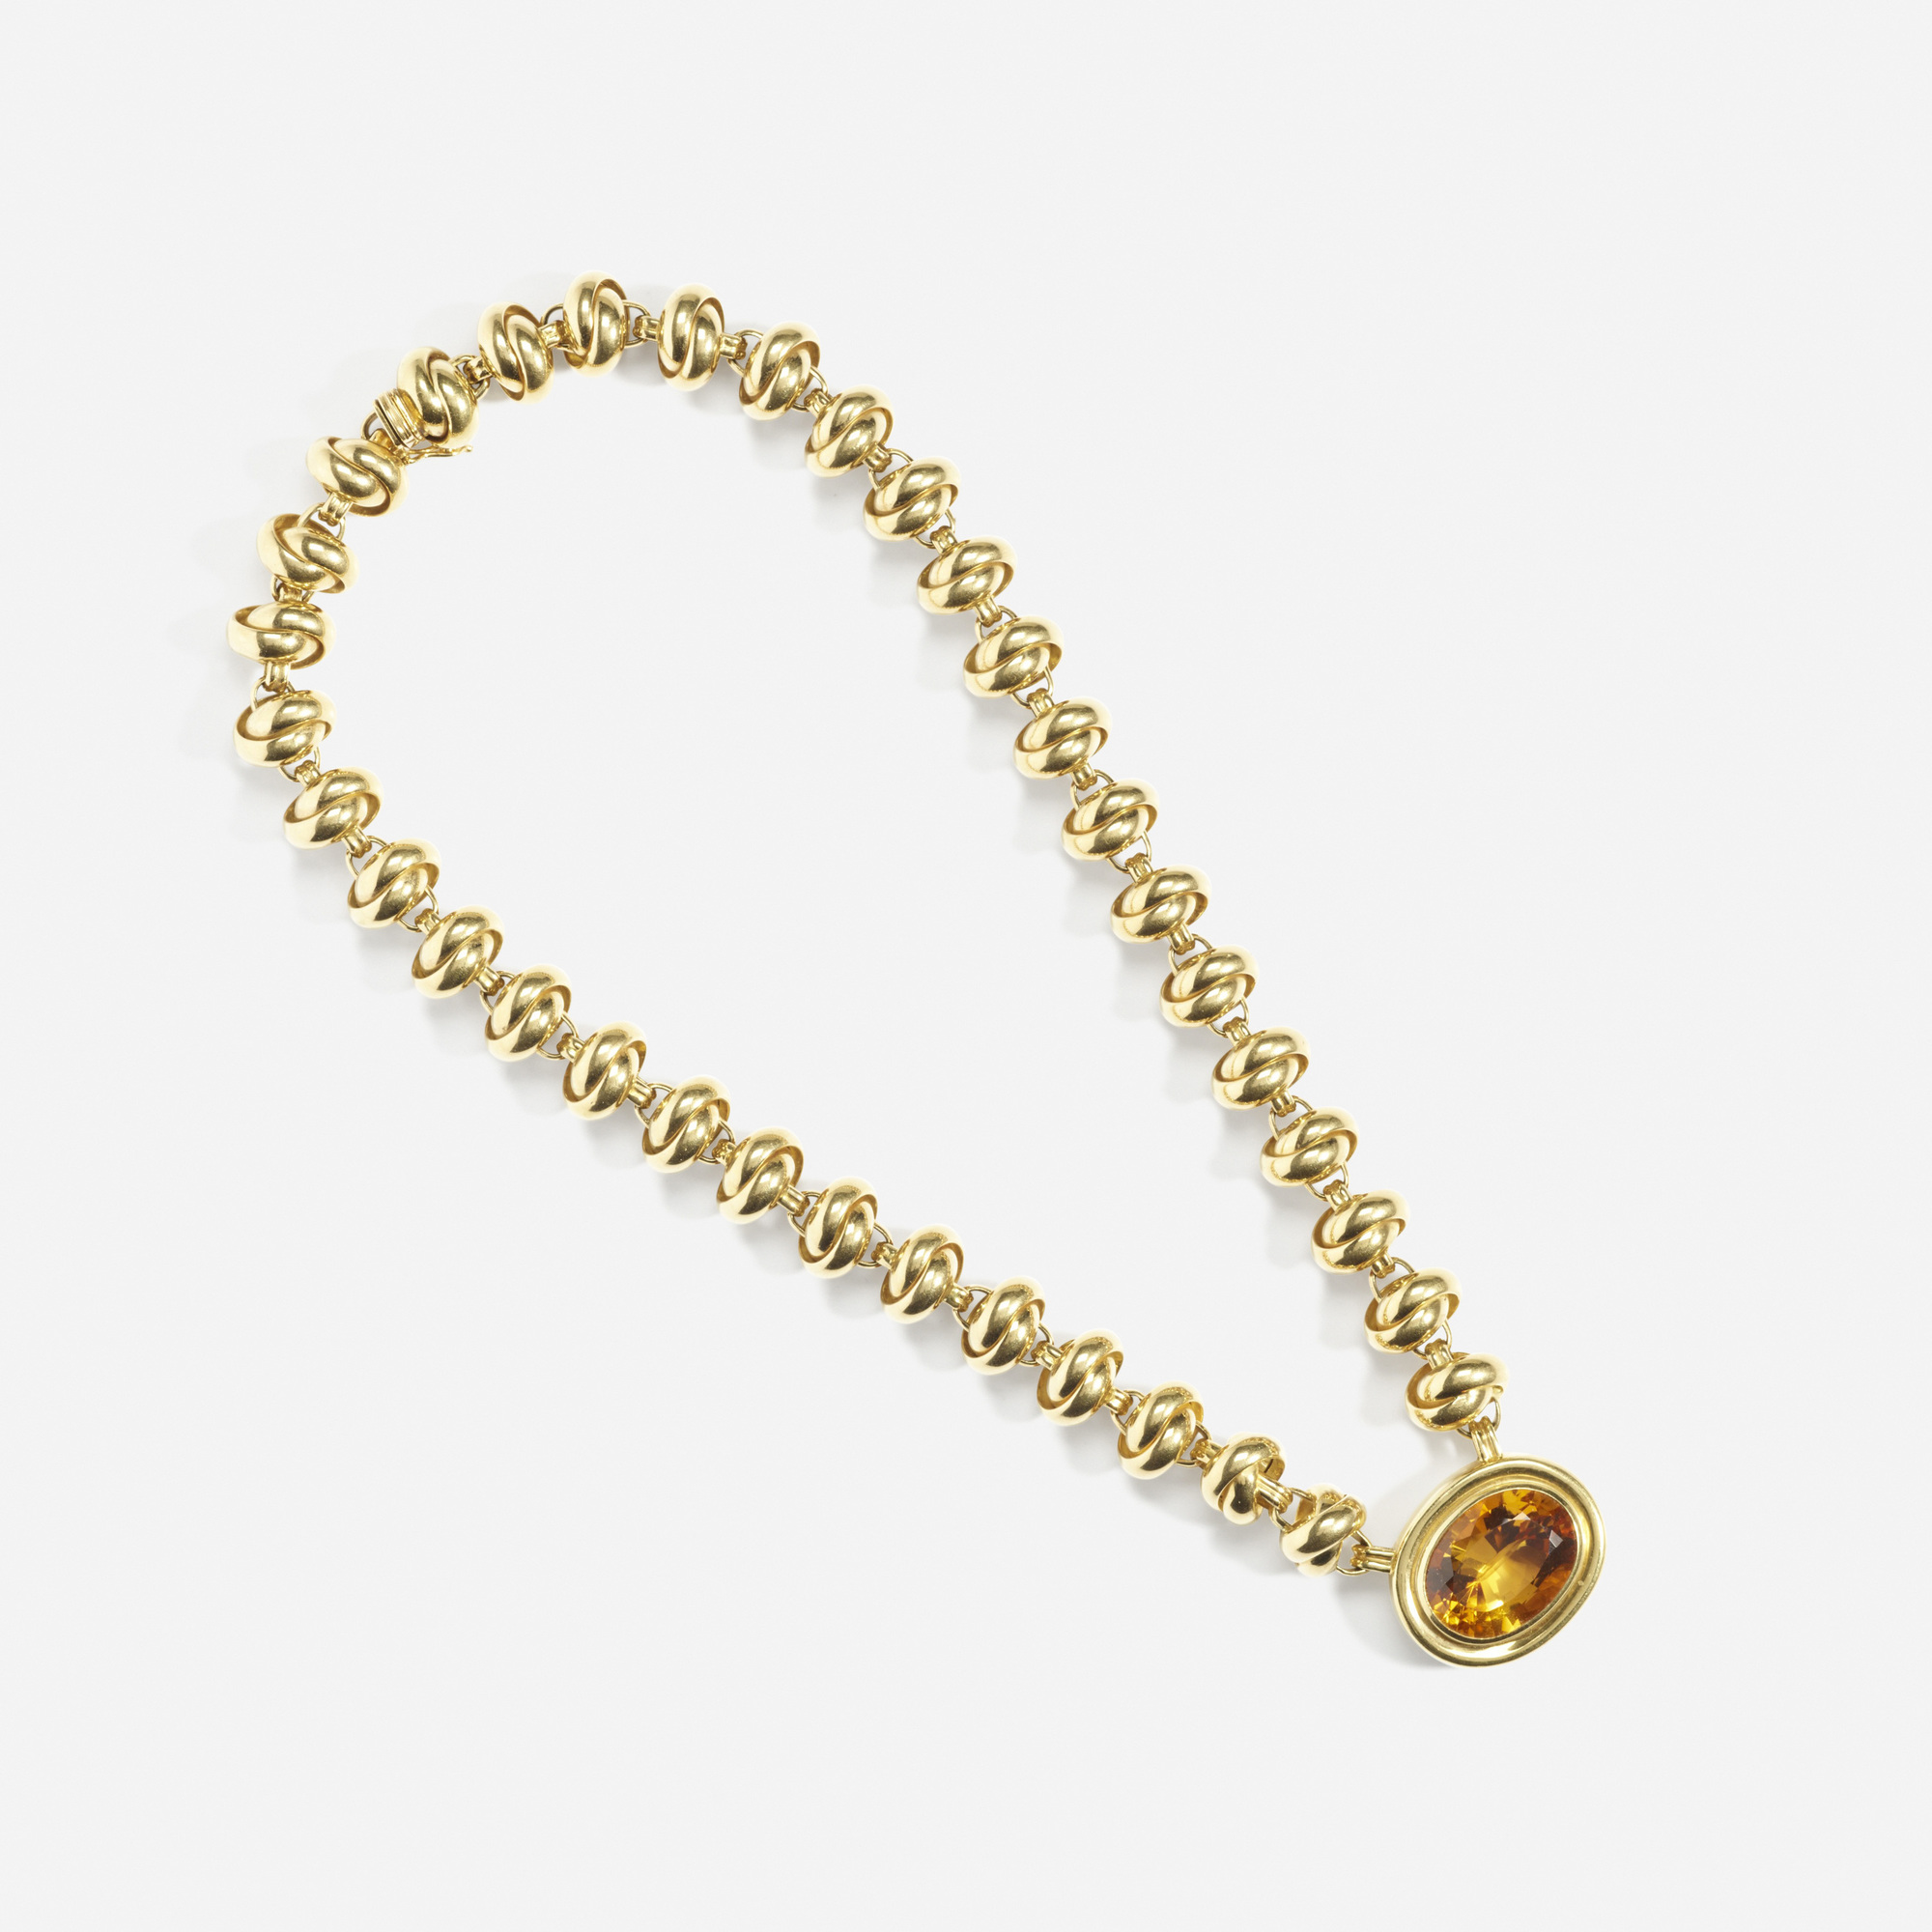 199: Paloma Picasso for Tiffany & Co. / A gold and citrine bracelet (2 of 2)